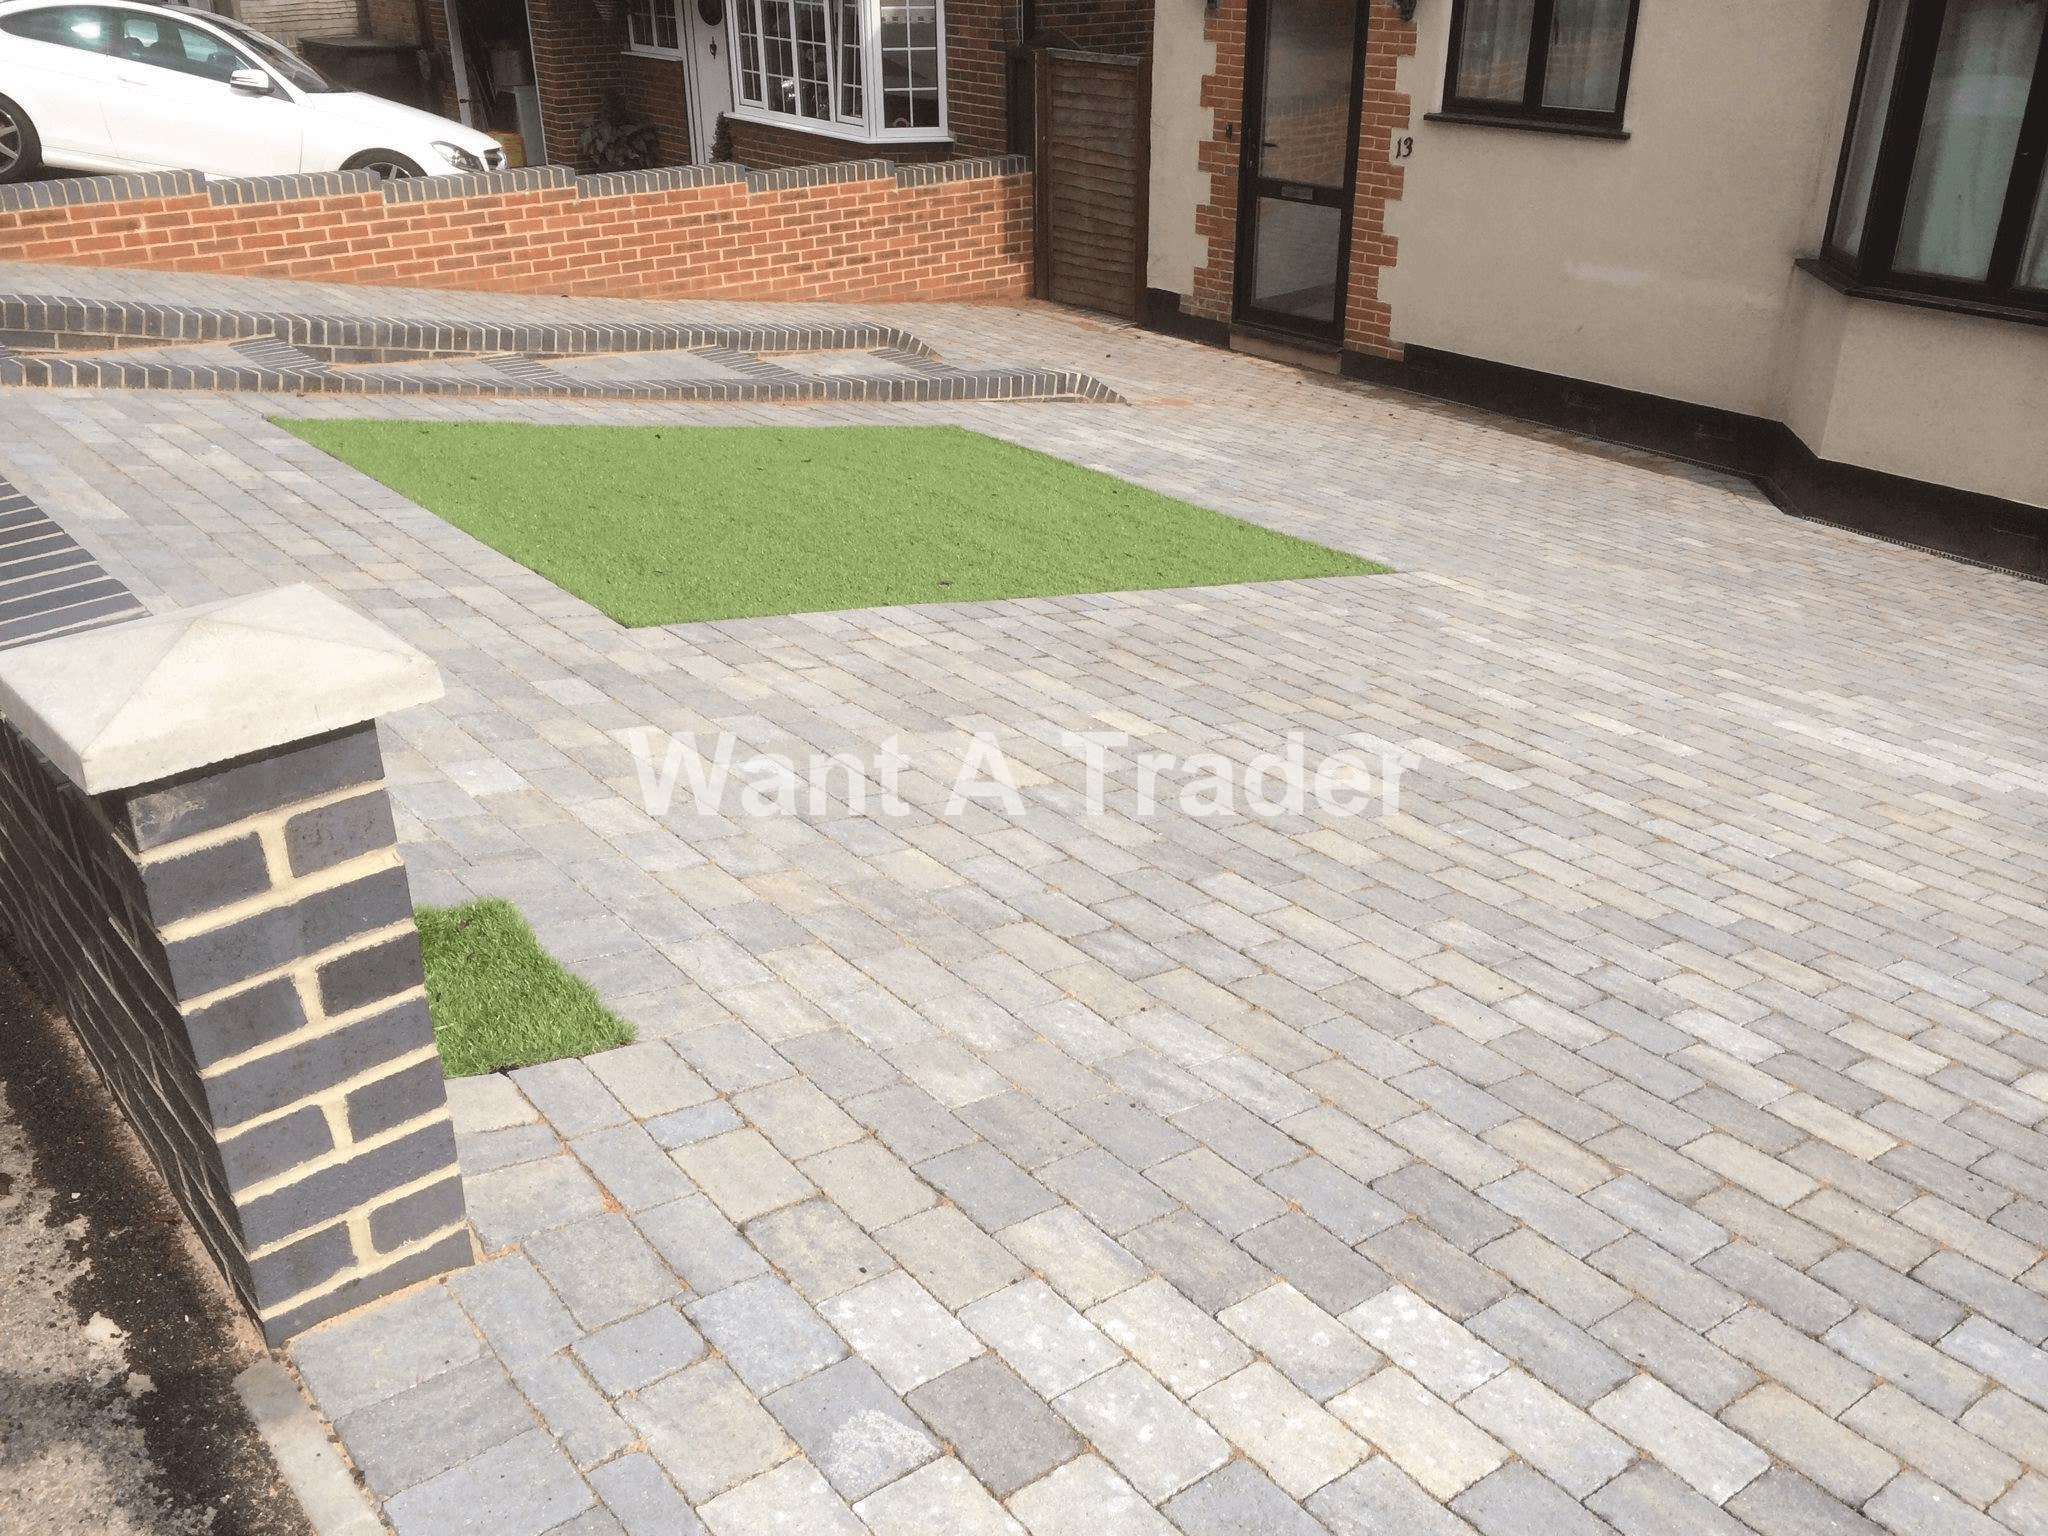 Driveway Design and Installation Company Hounslow TW3